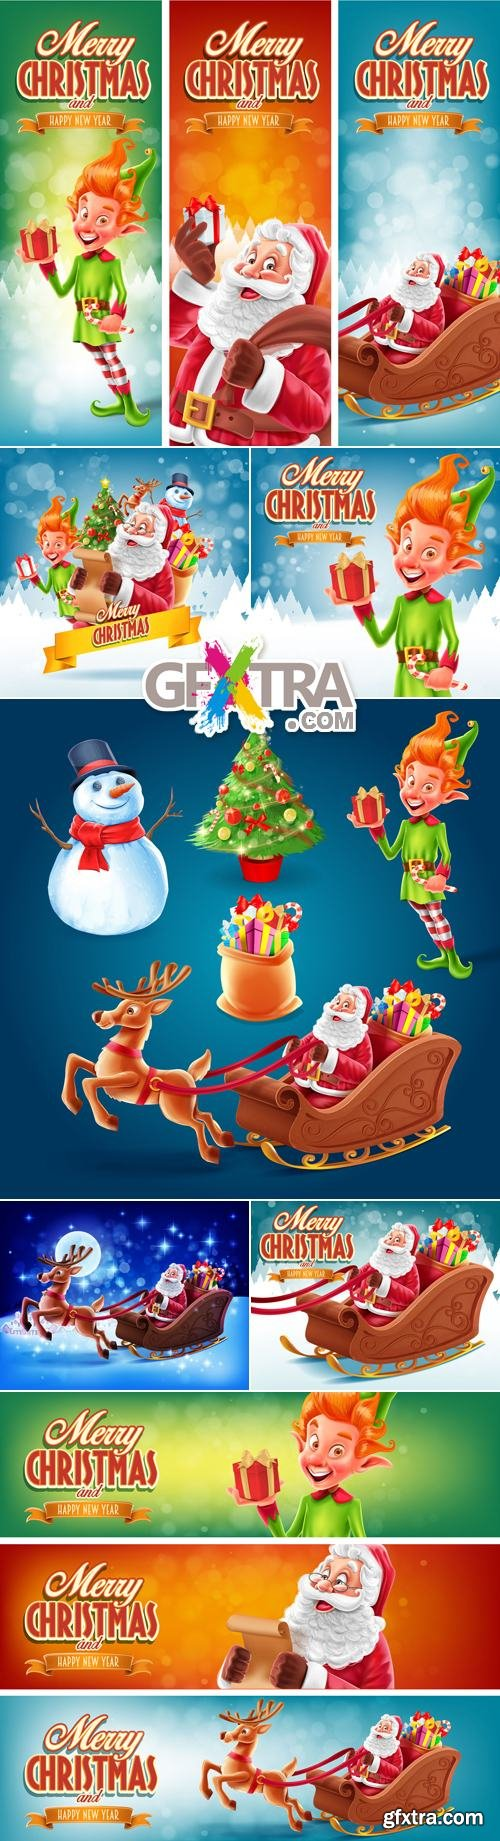 Christmas Backgrounds & Banners Vector